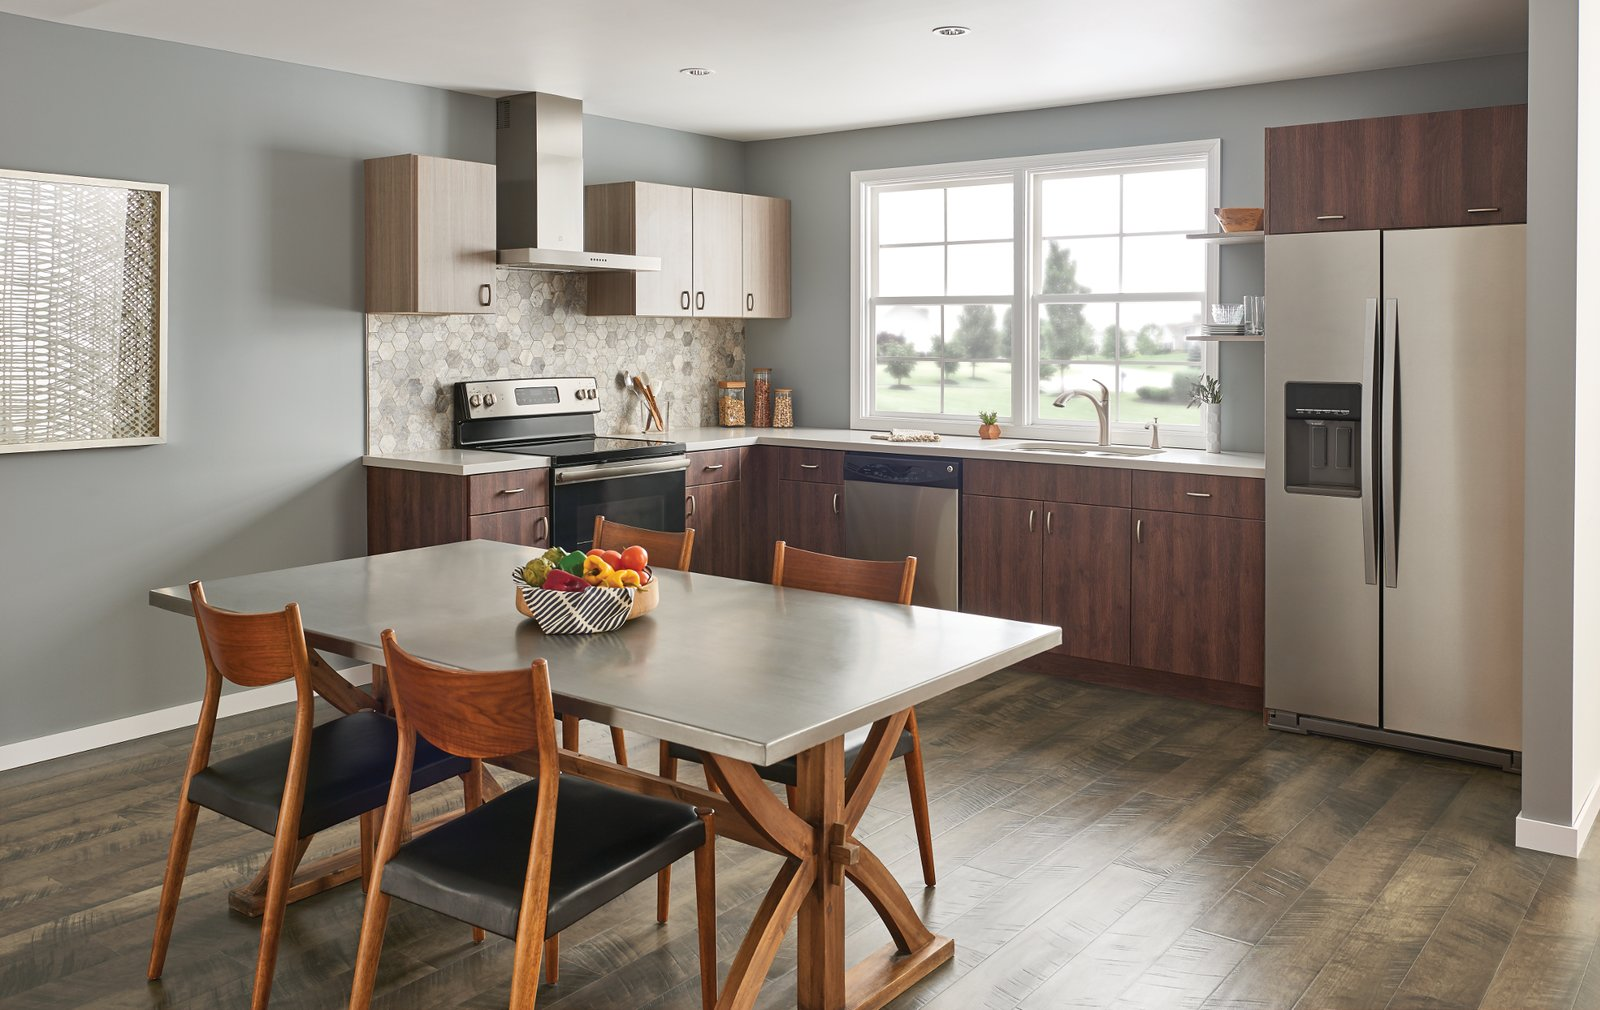 Kitchen, Refrigerator, Range, Range Hood, Wood Cabinet, and Ceramic Tile Backsplashe  Photo 1 of 8 in How to Add a Modern Twist to Any Kitchen Style